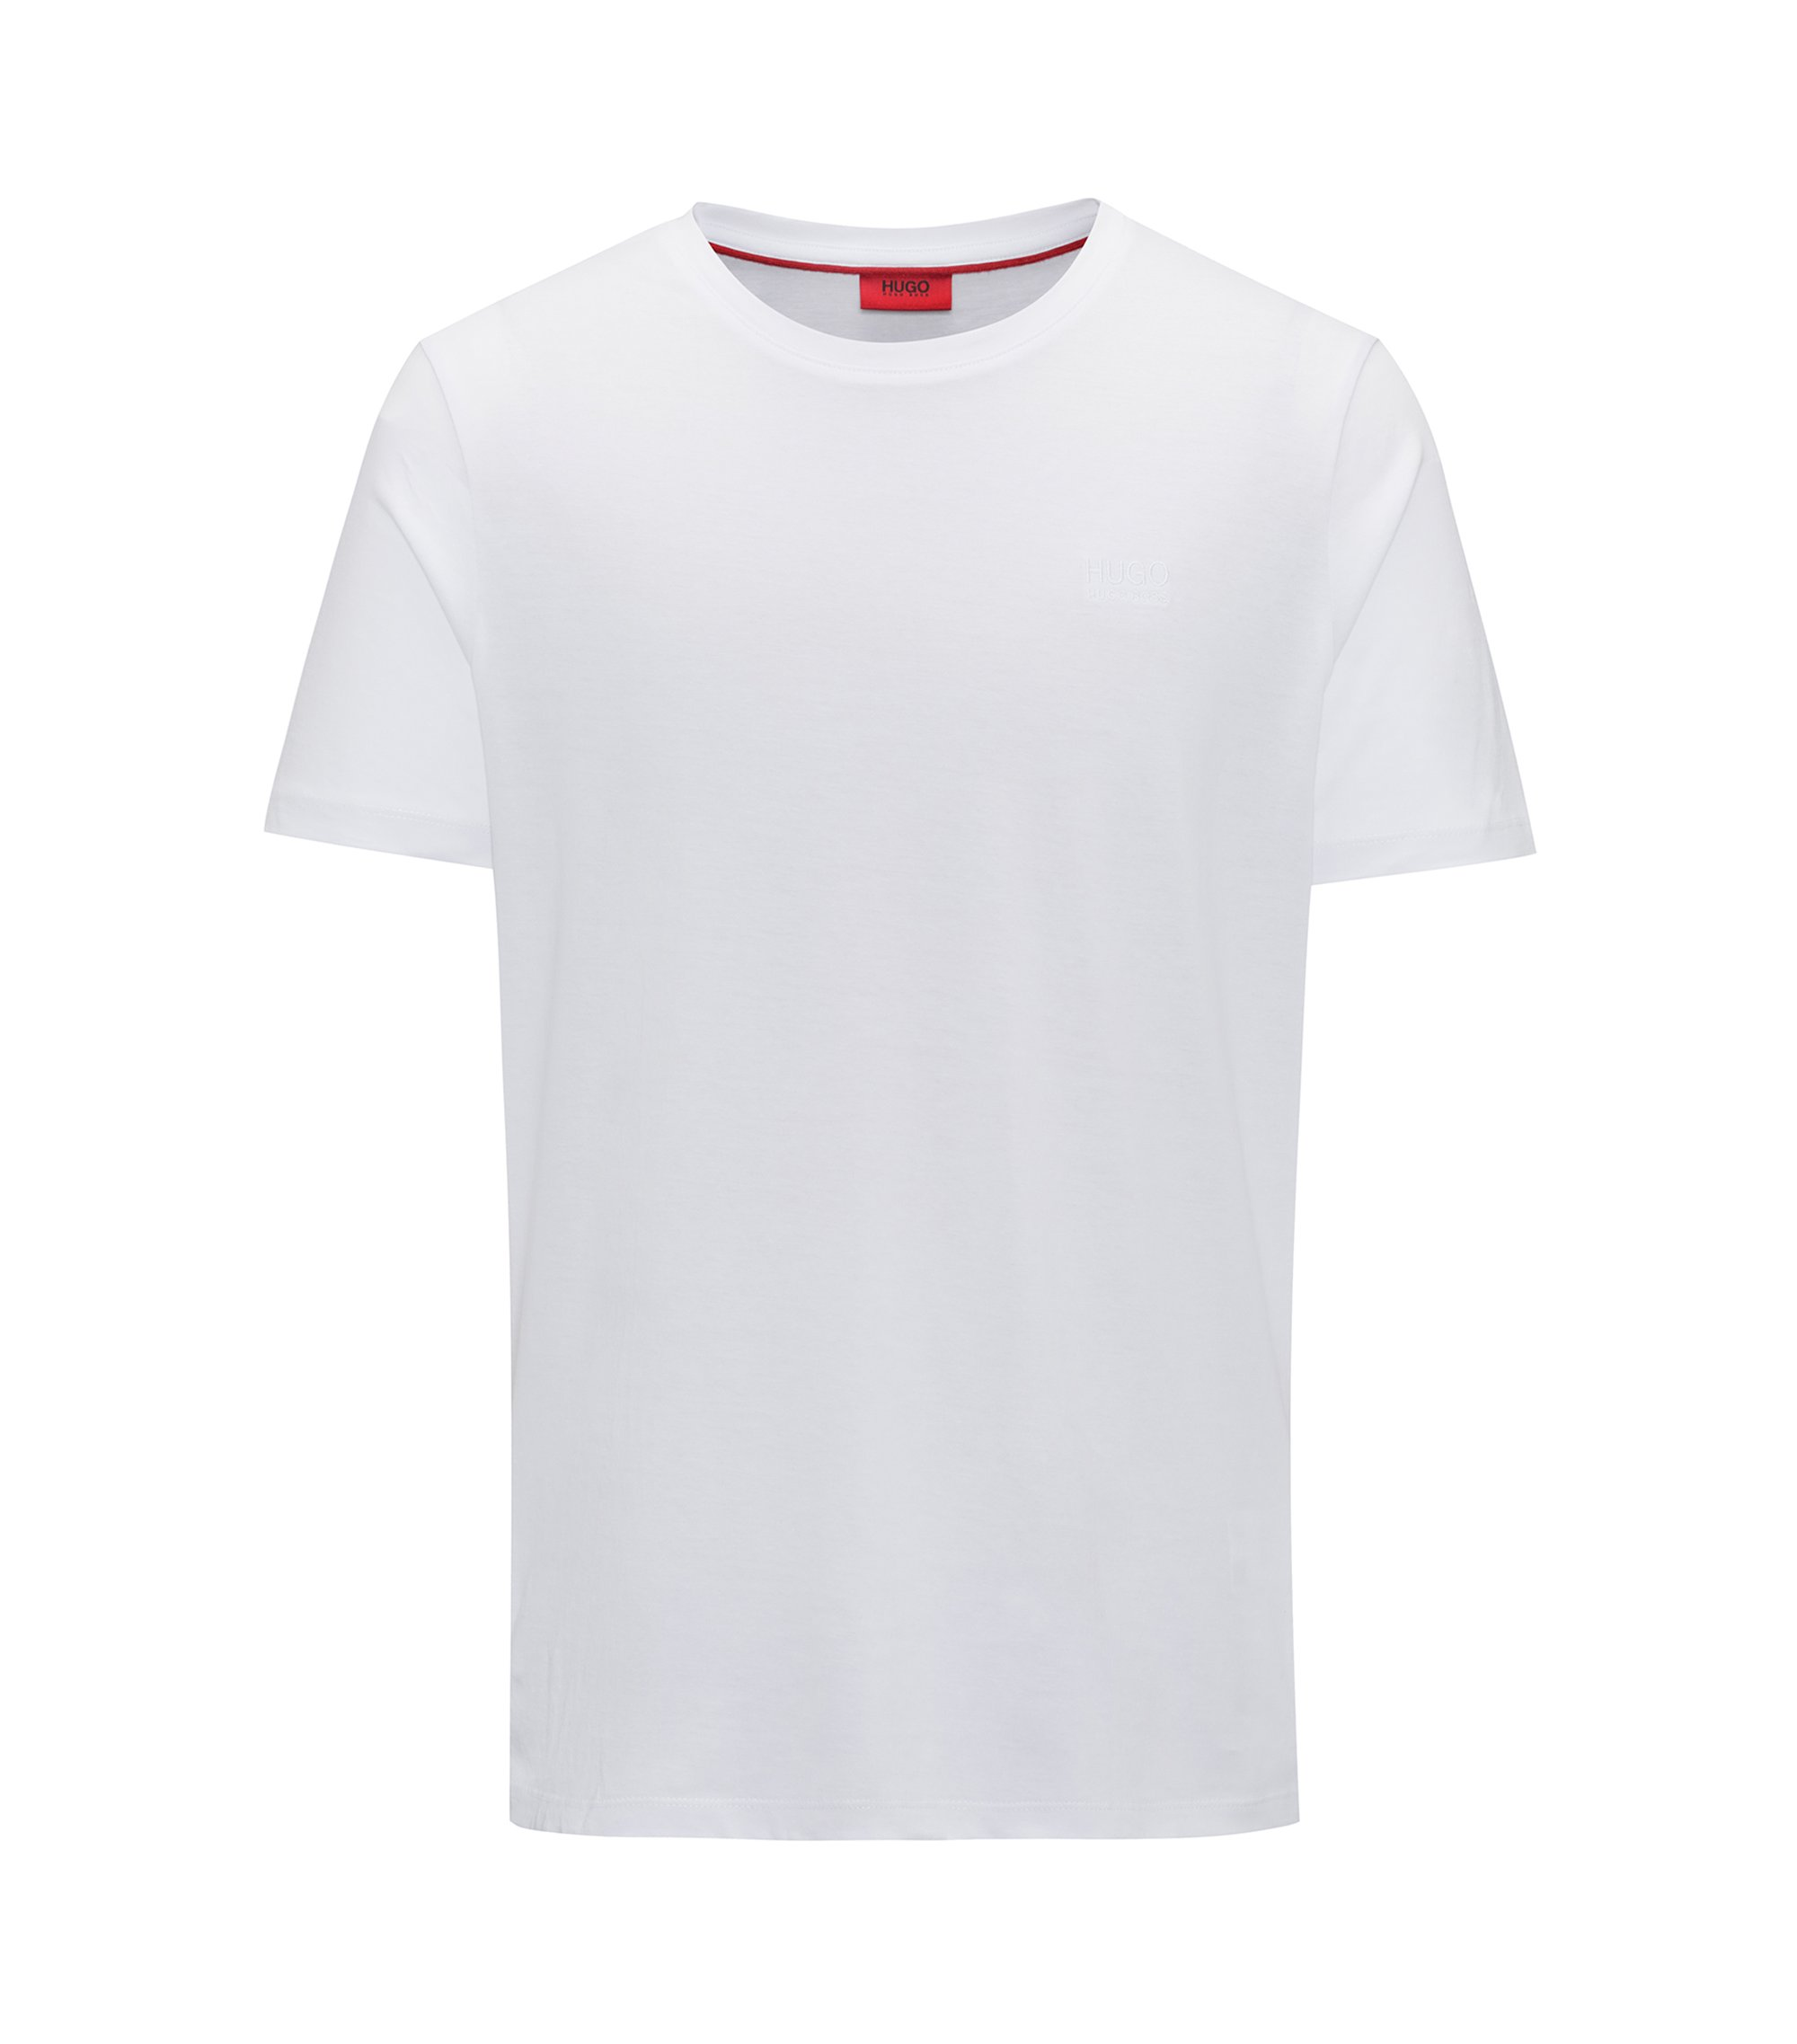 T-shirt regular fit in morbido cotone con logo, Bianco